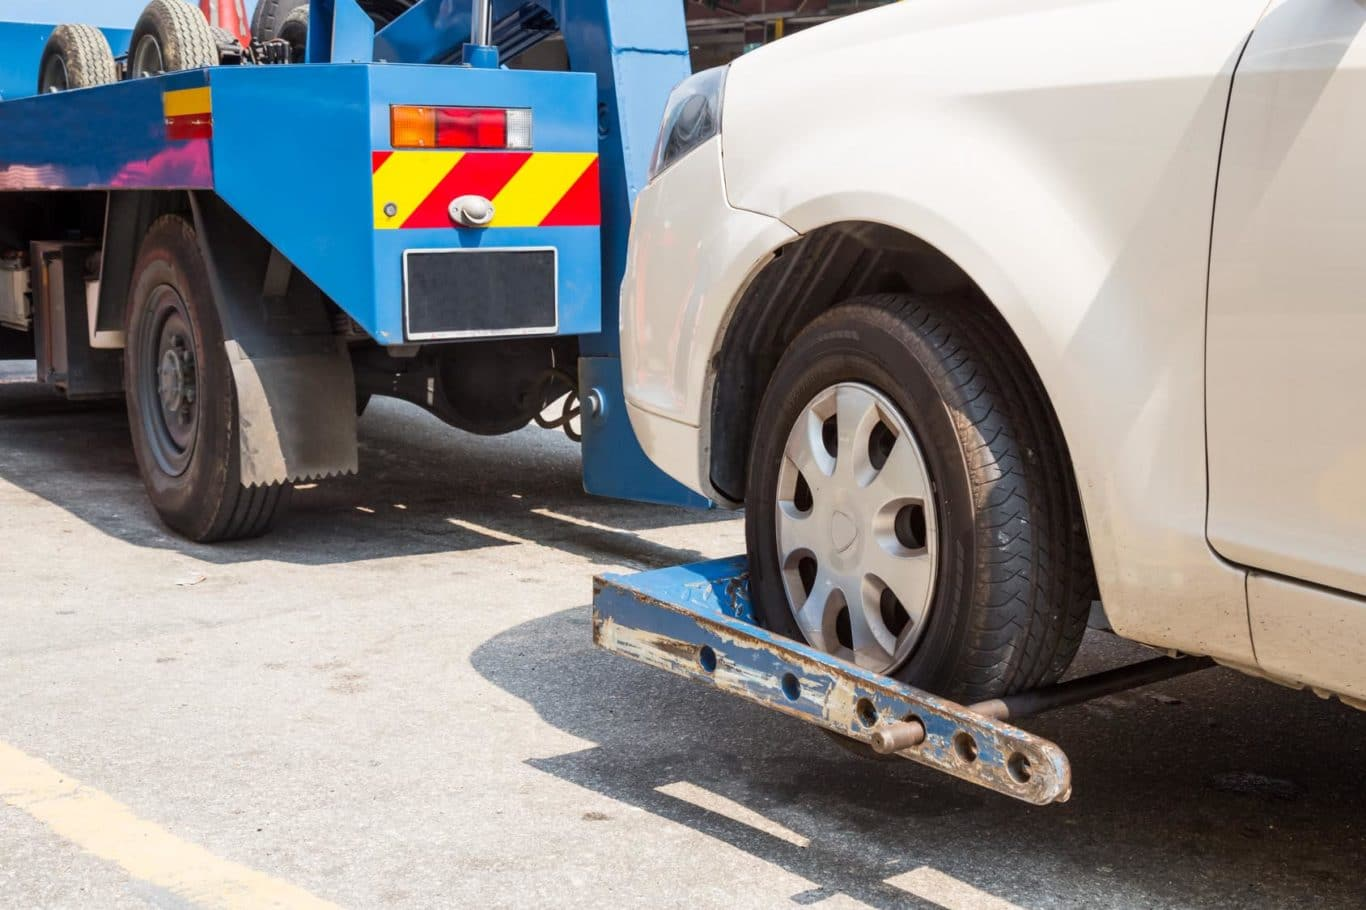 Maynooth expert Car Towing services